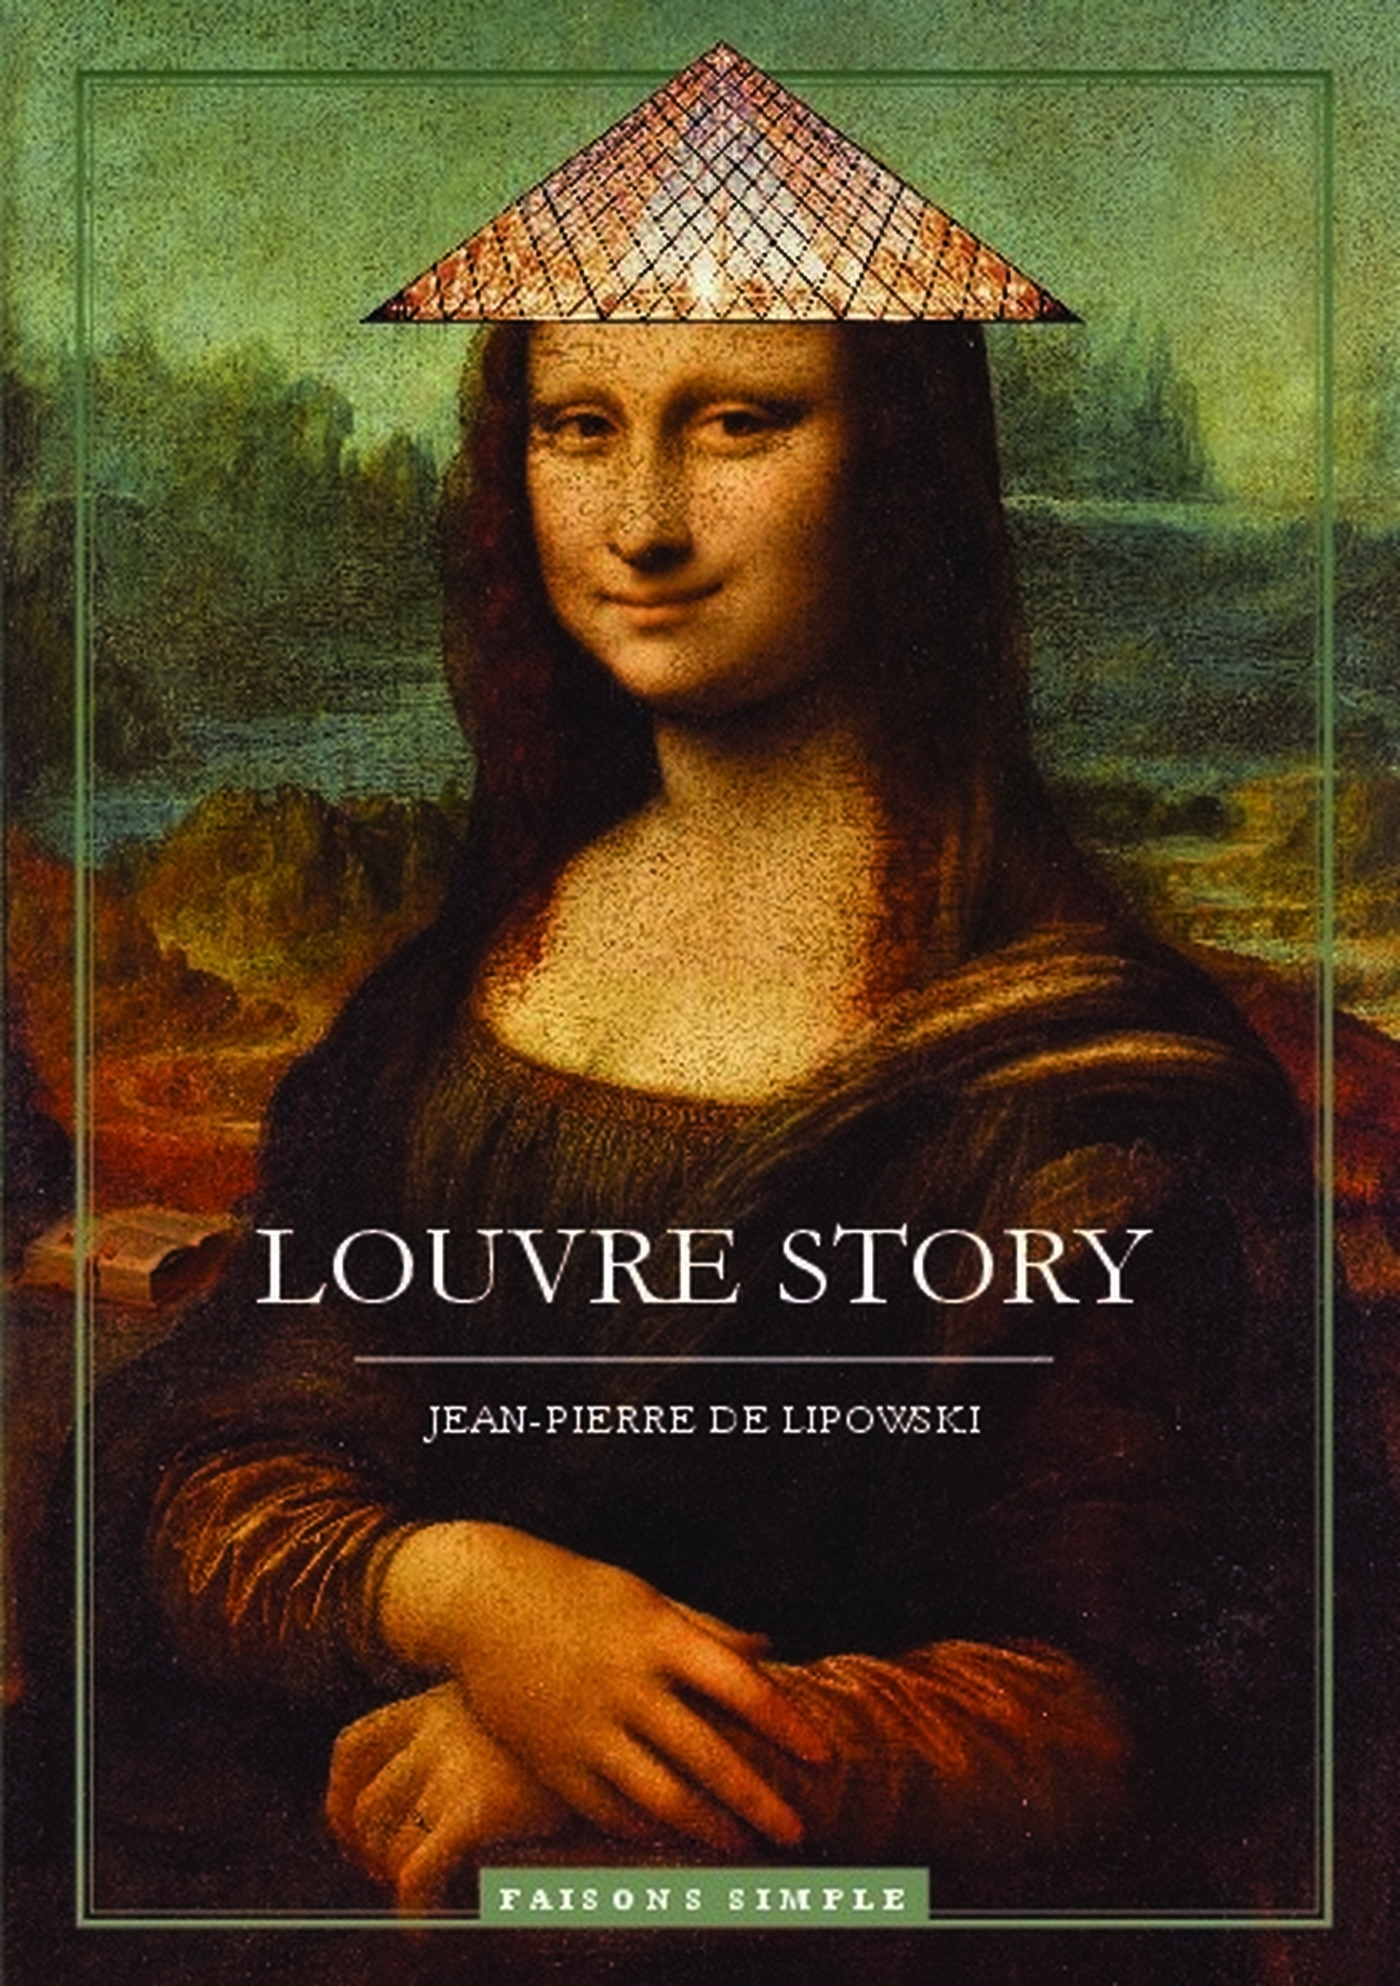 LOUVRE STORY